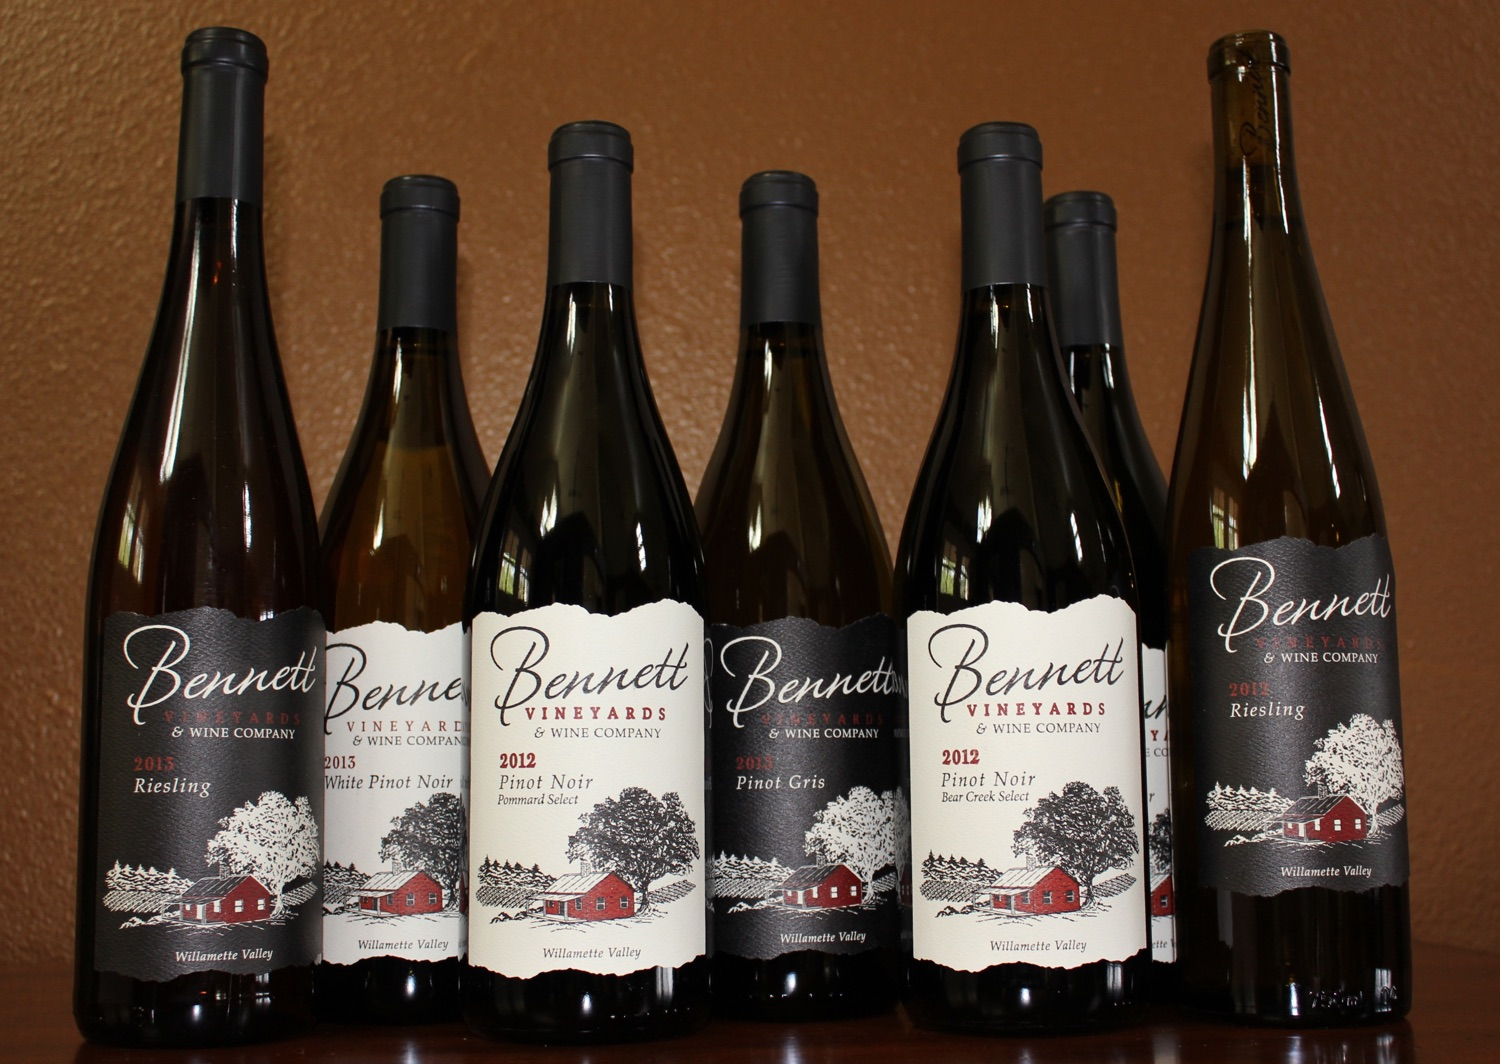 Our artisanal wines are only available at the Tasting Room and through our website